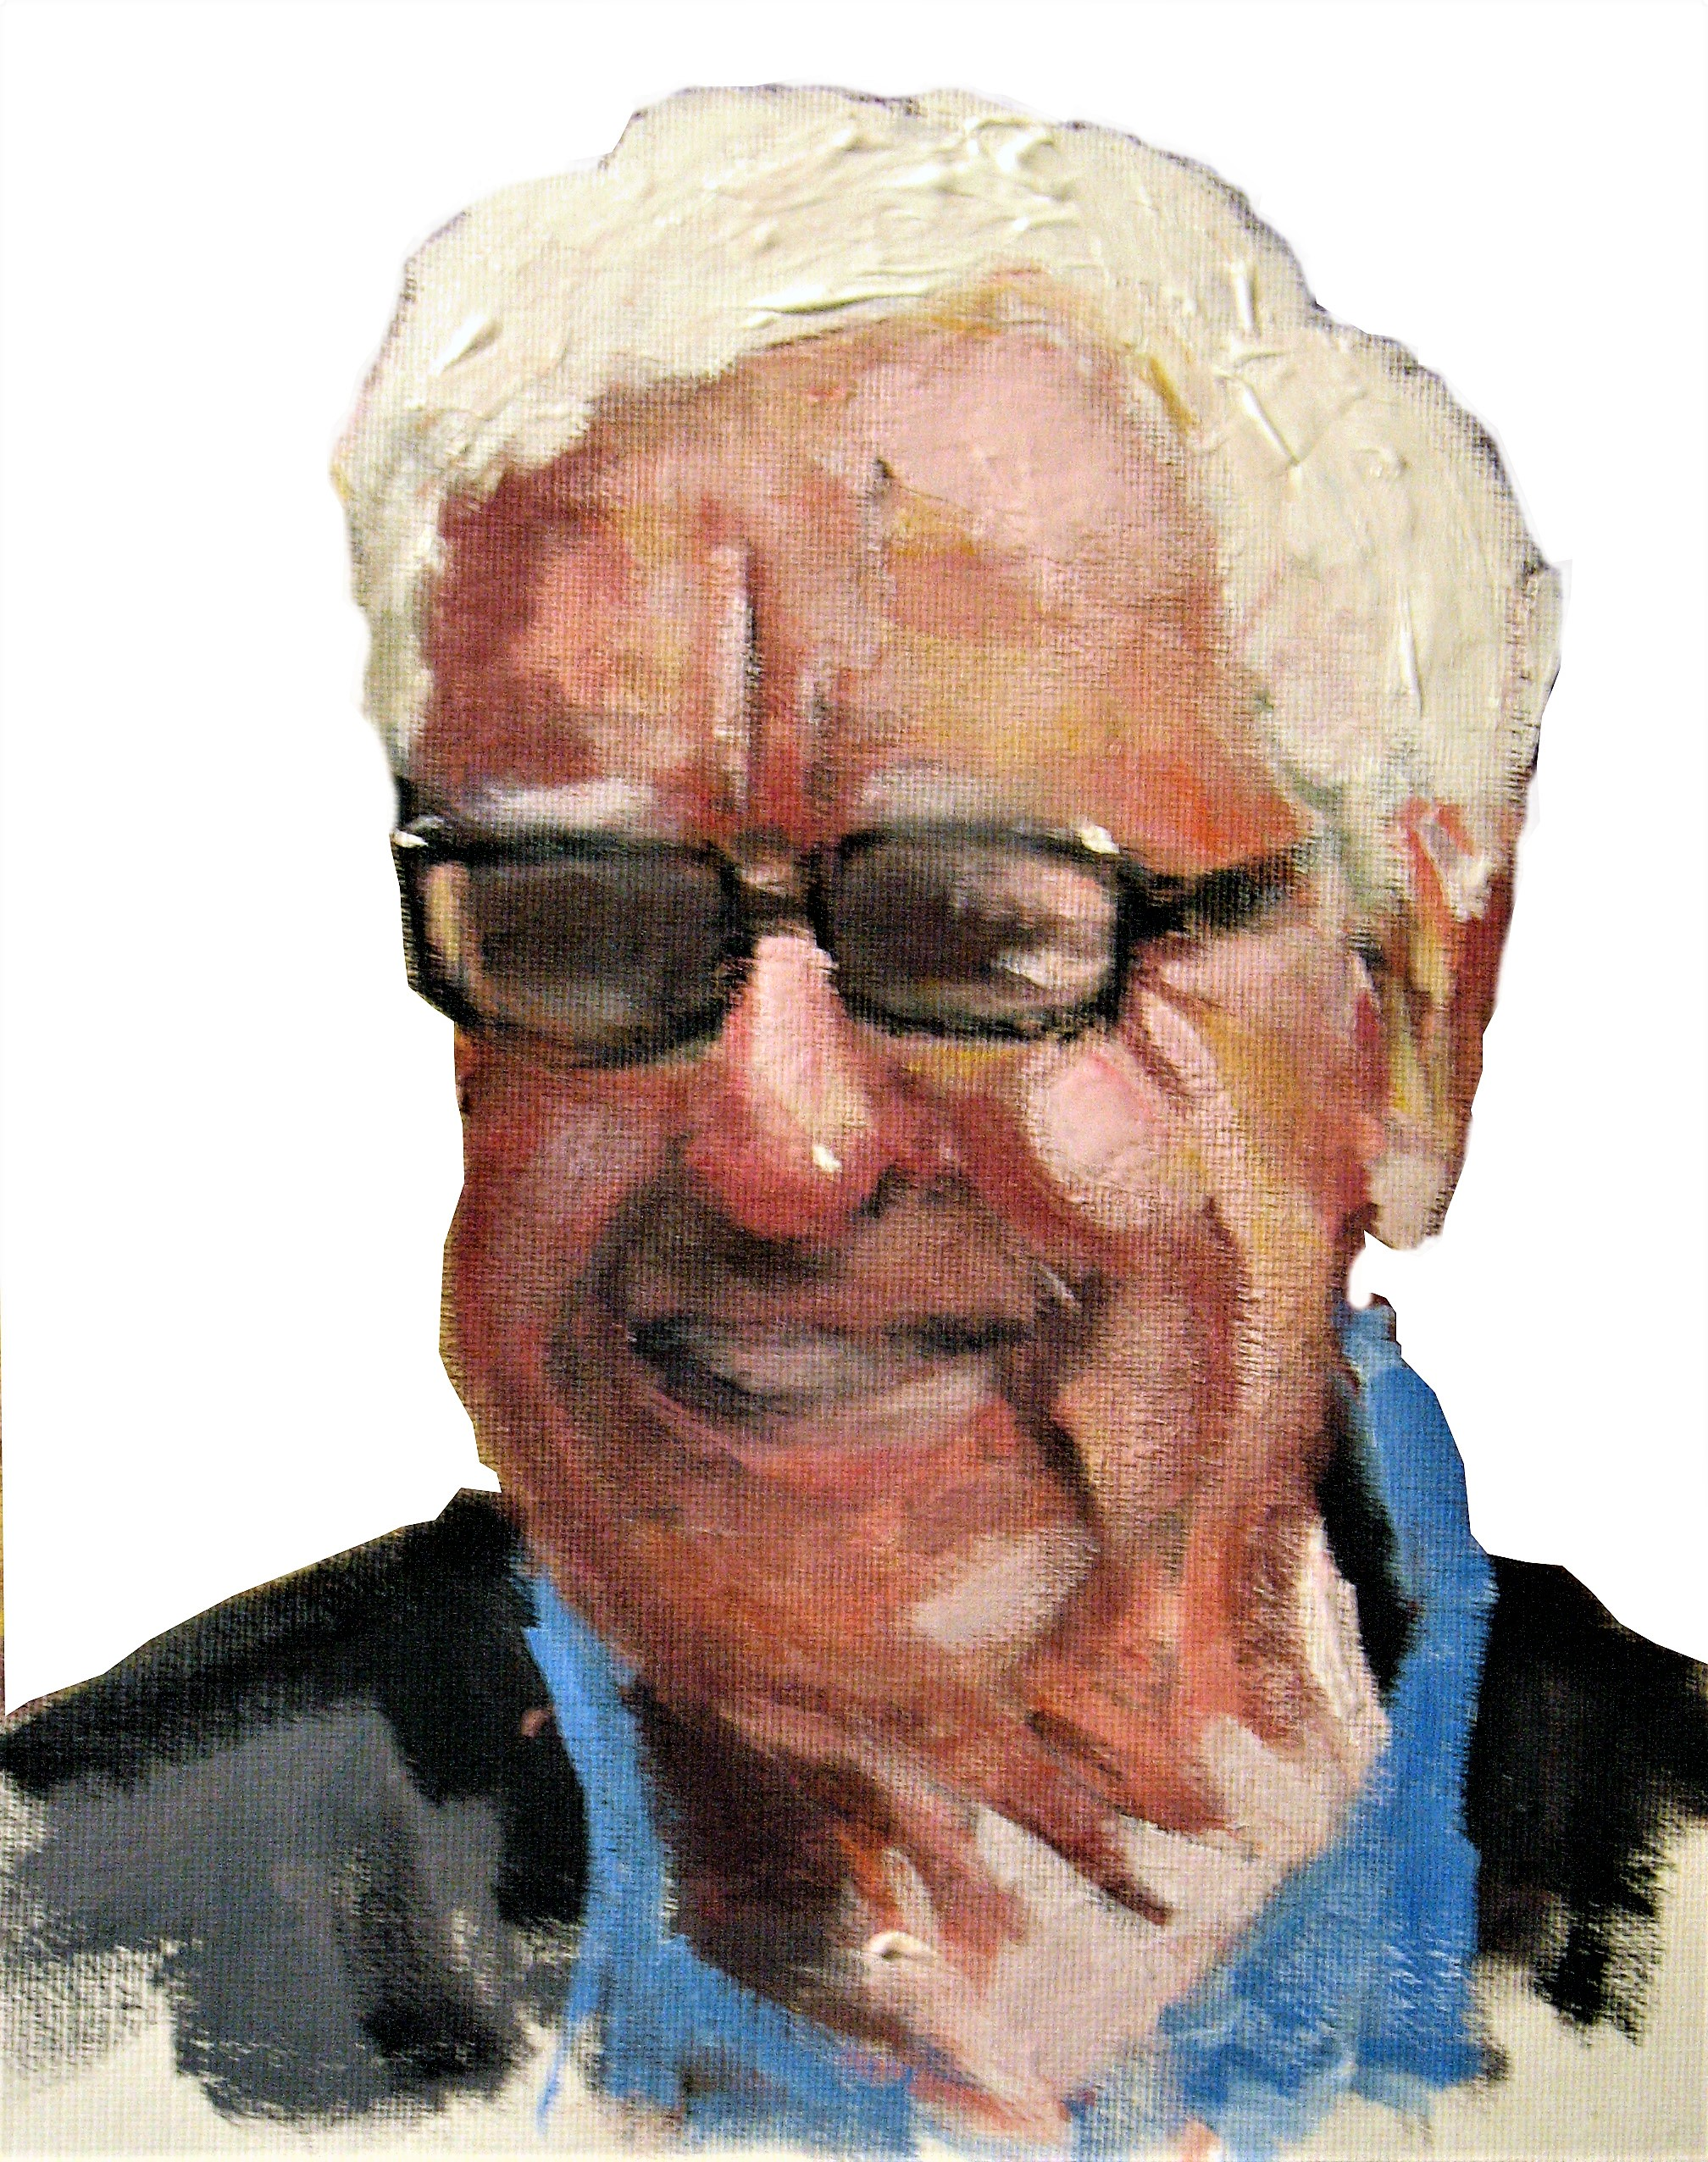 Caption: A quick, unsophisticated acrylic sketch of former President of the Royal South Australian Society of Arts, James Raggatt. I'm not a portrait artist, but was lucky with this one as it did capture James's likeness and infectious smile. December 2008.